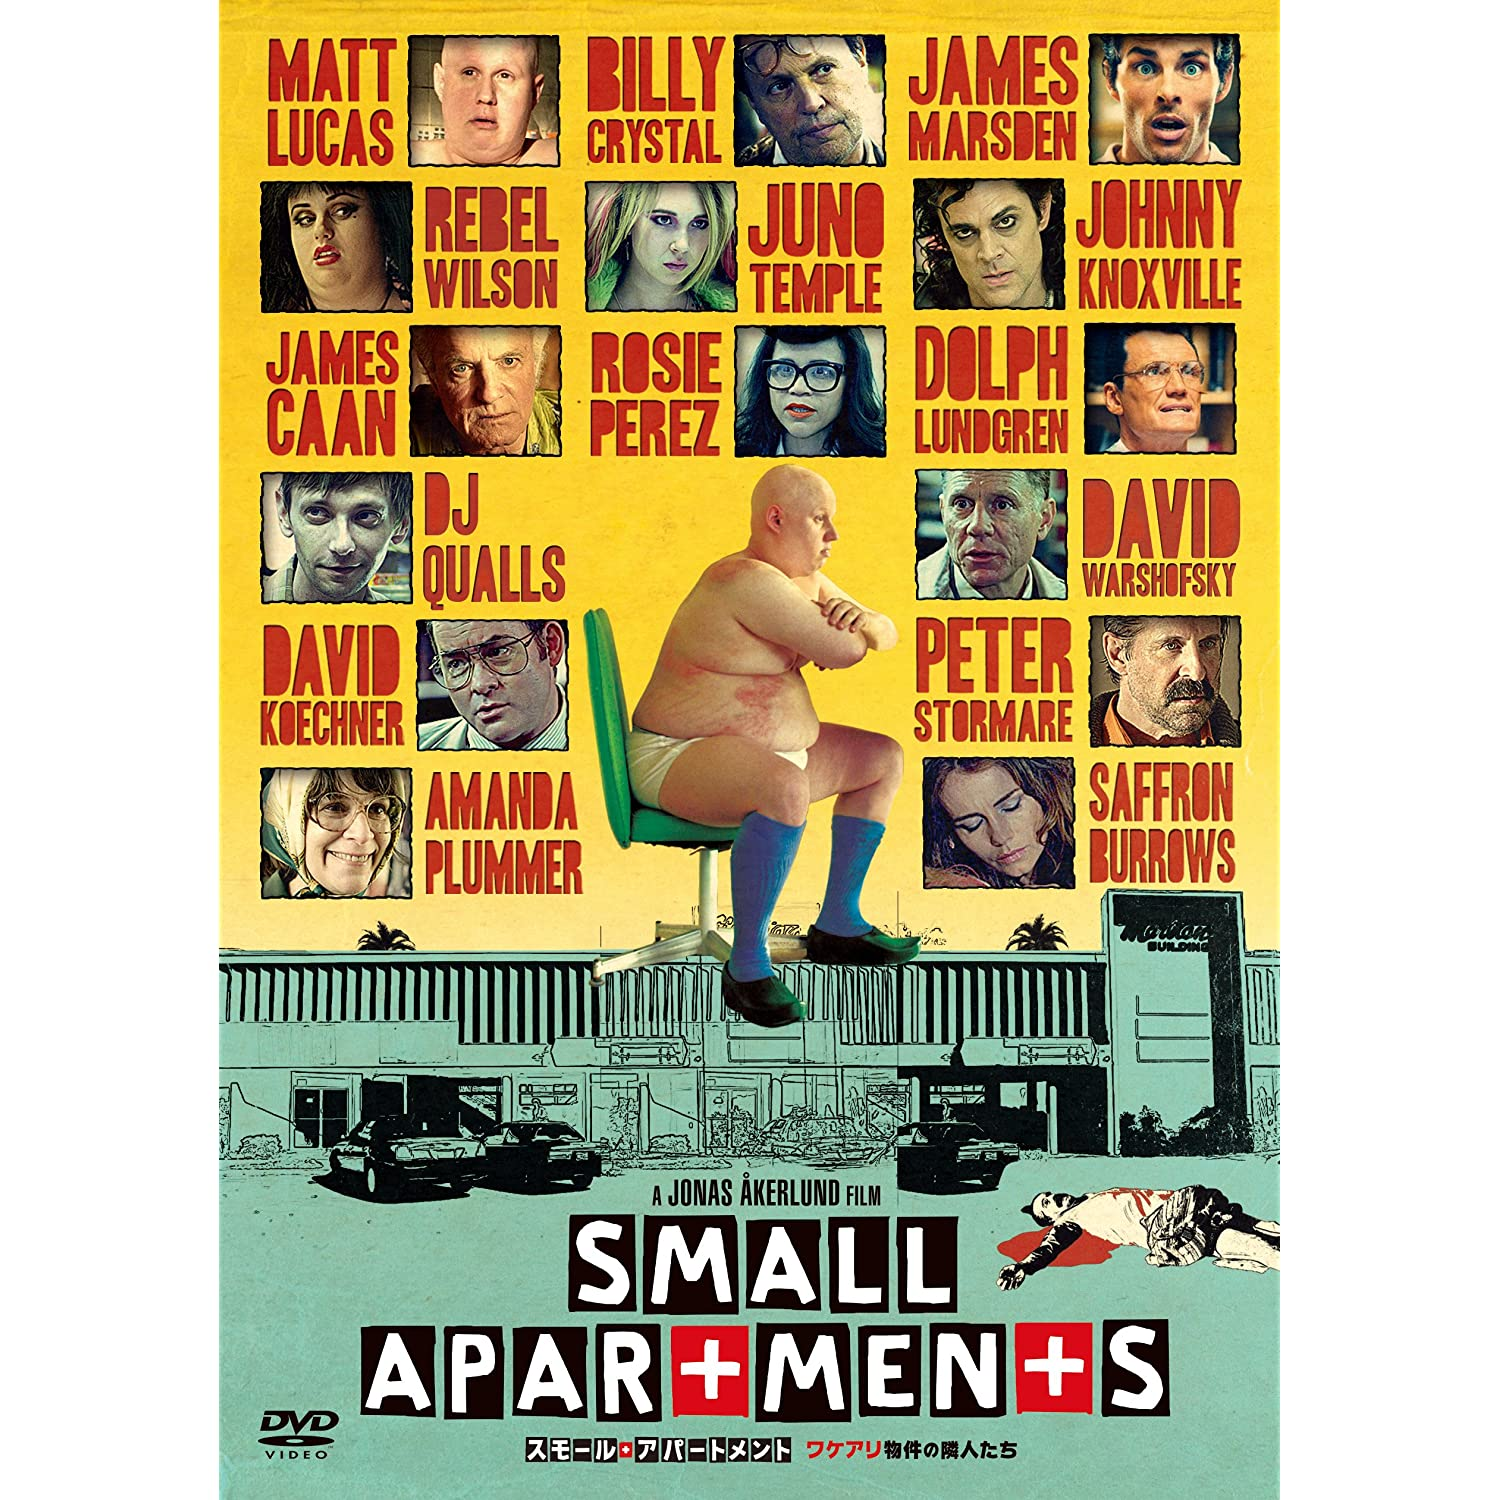 Apartment Film: Ultimate Dolph • View Topic